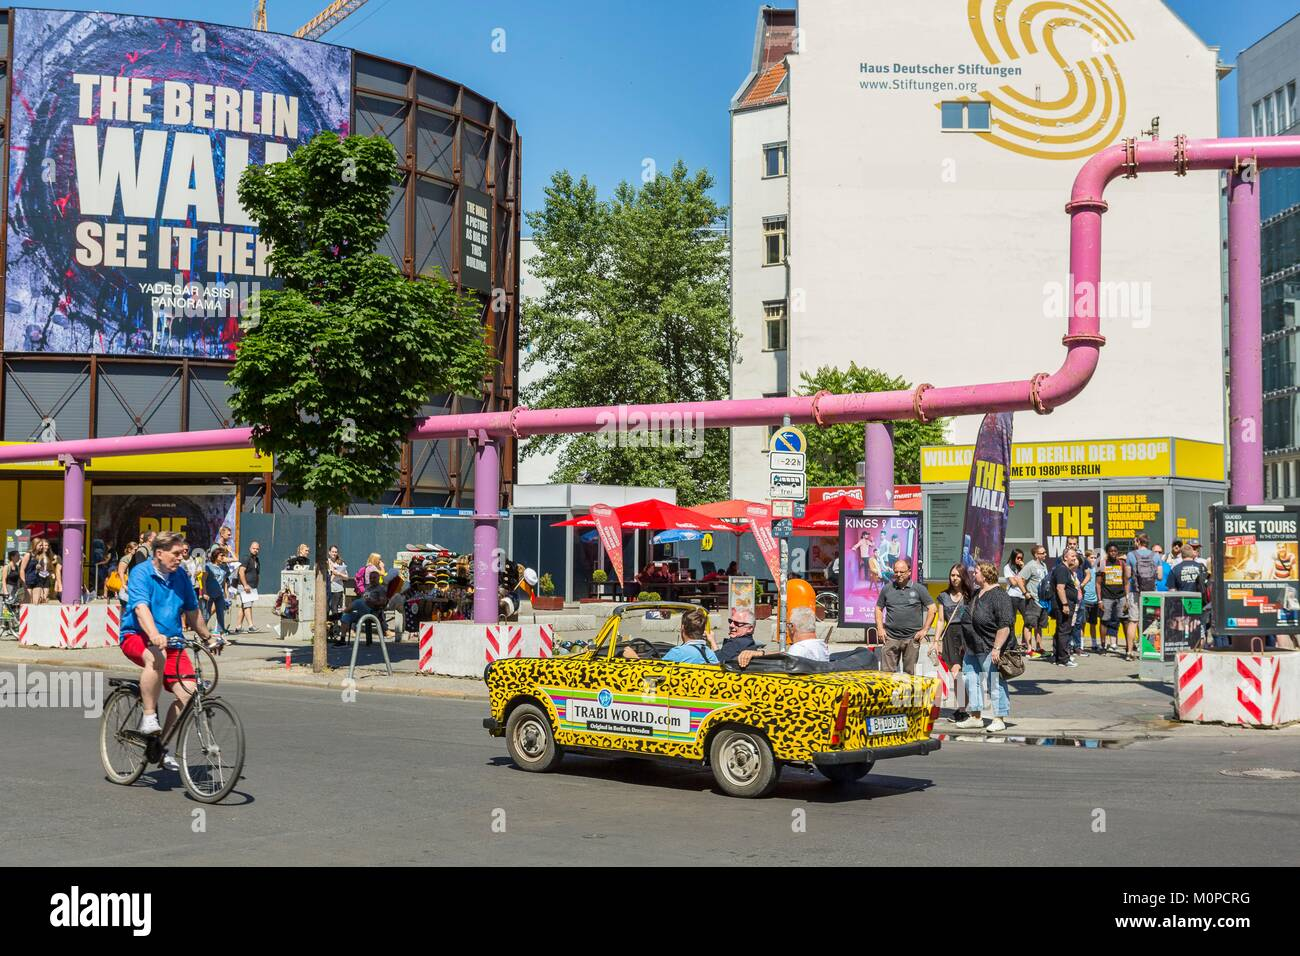 Germany Berlin Checkpoint Charlie Tourist Animation And Old Trabant